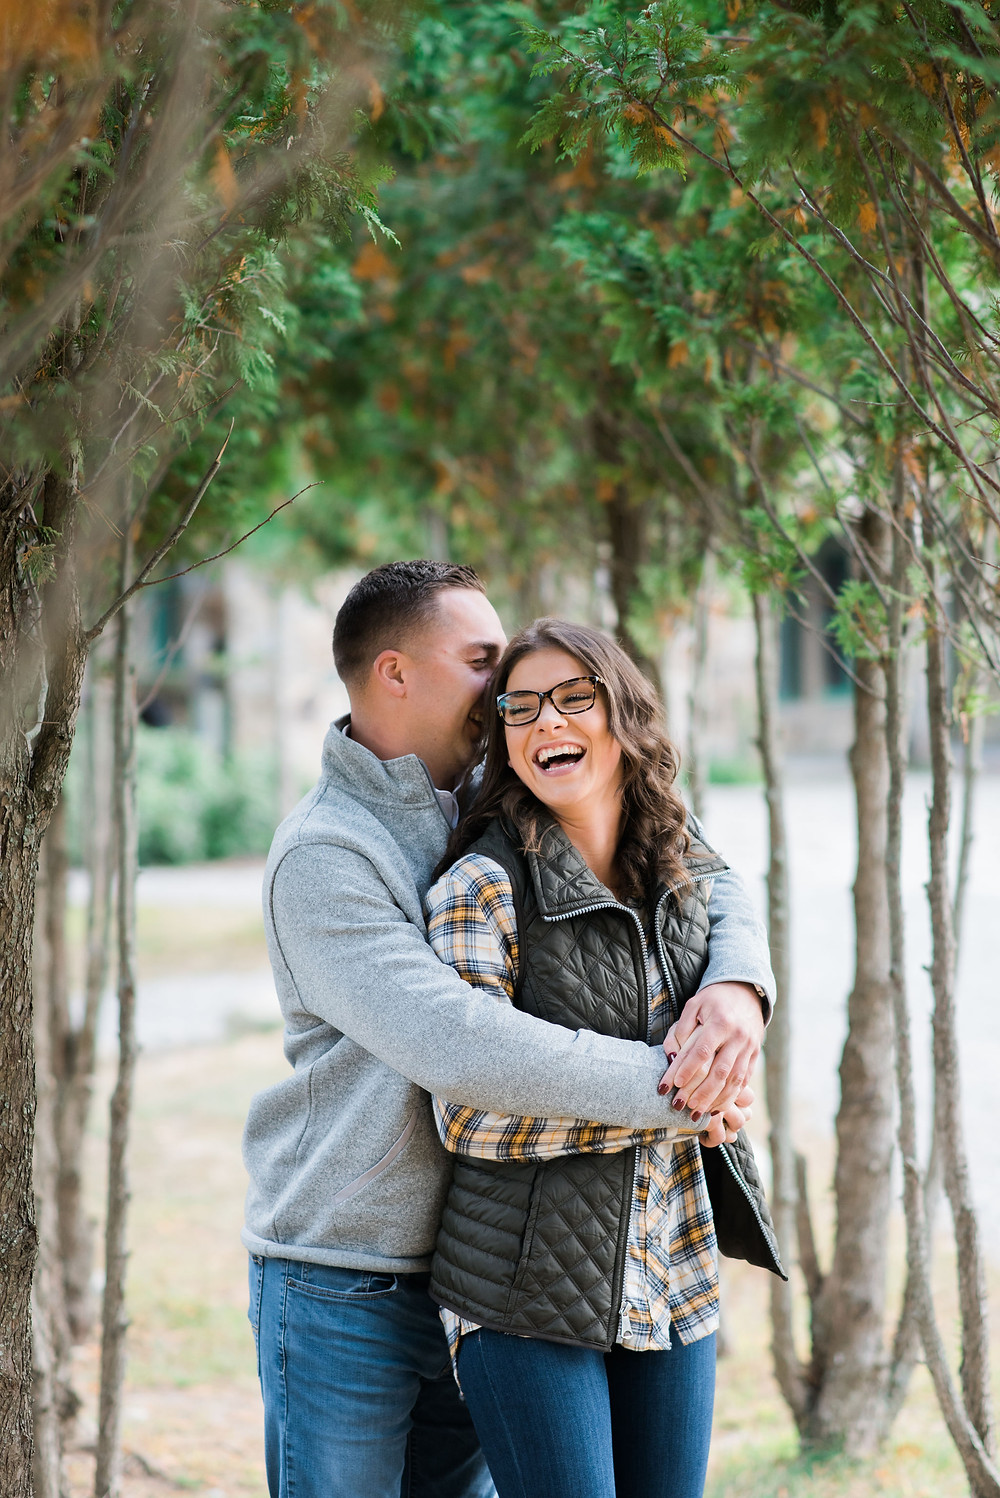 engagement photos in between trees. girl is laughing